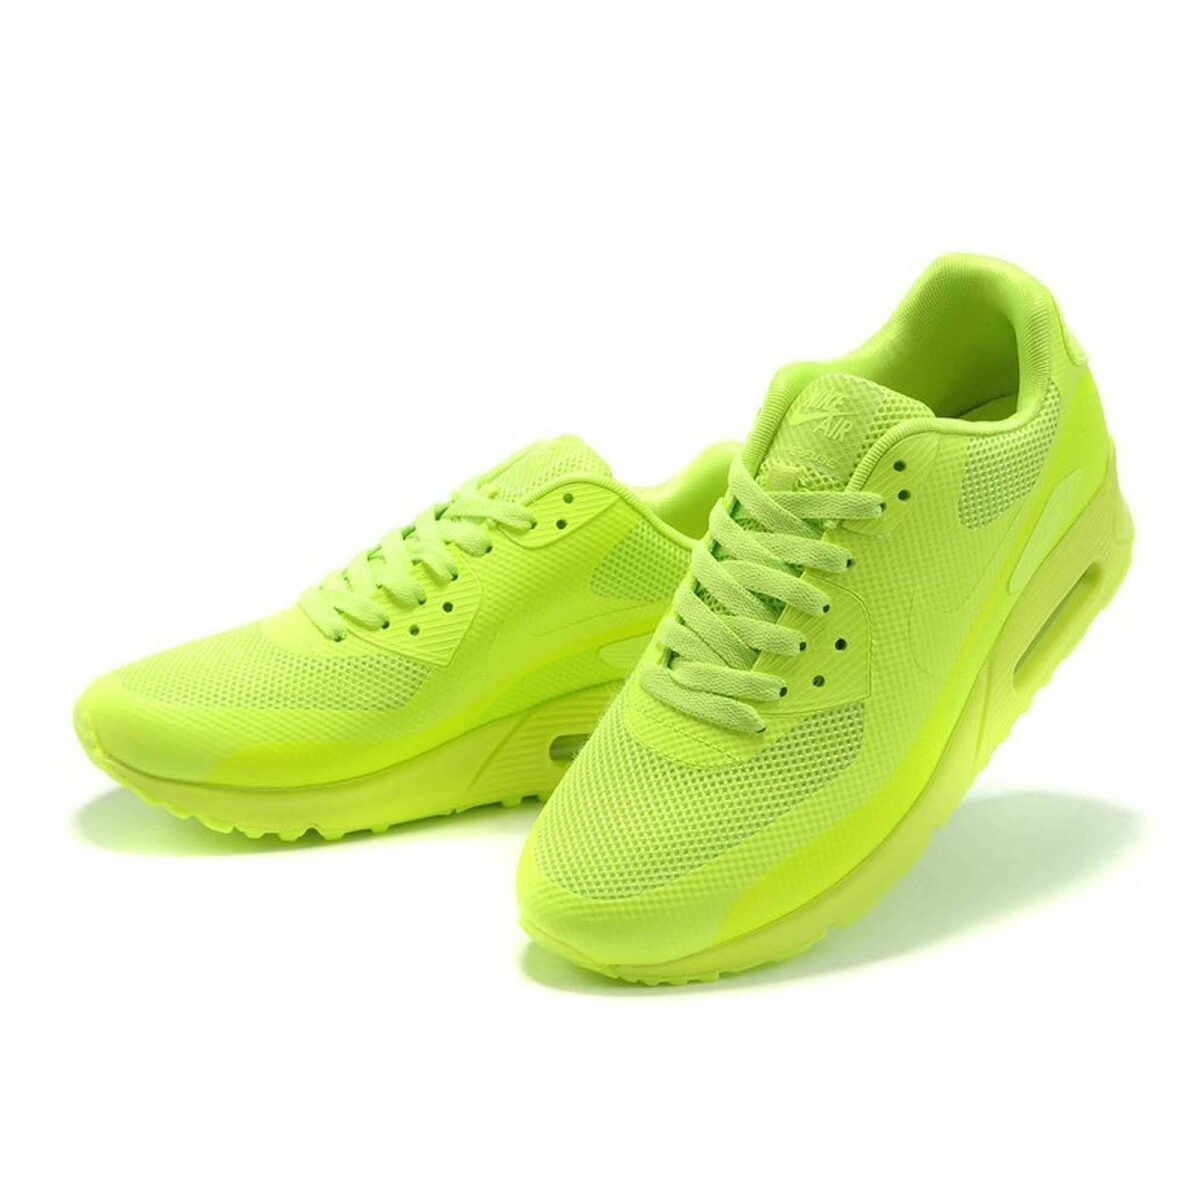 Nike Air Max 90 Hyperfuse 2012 Volt